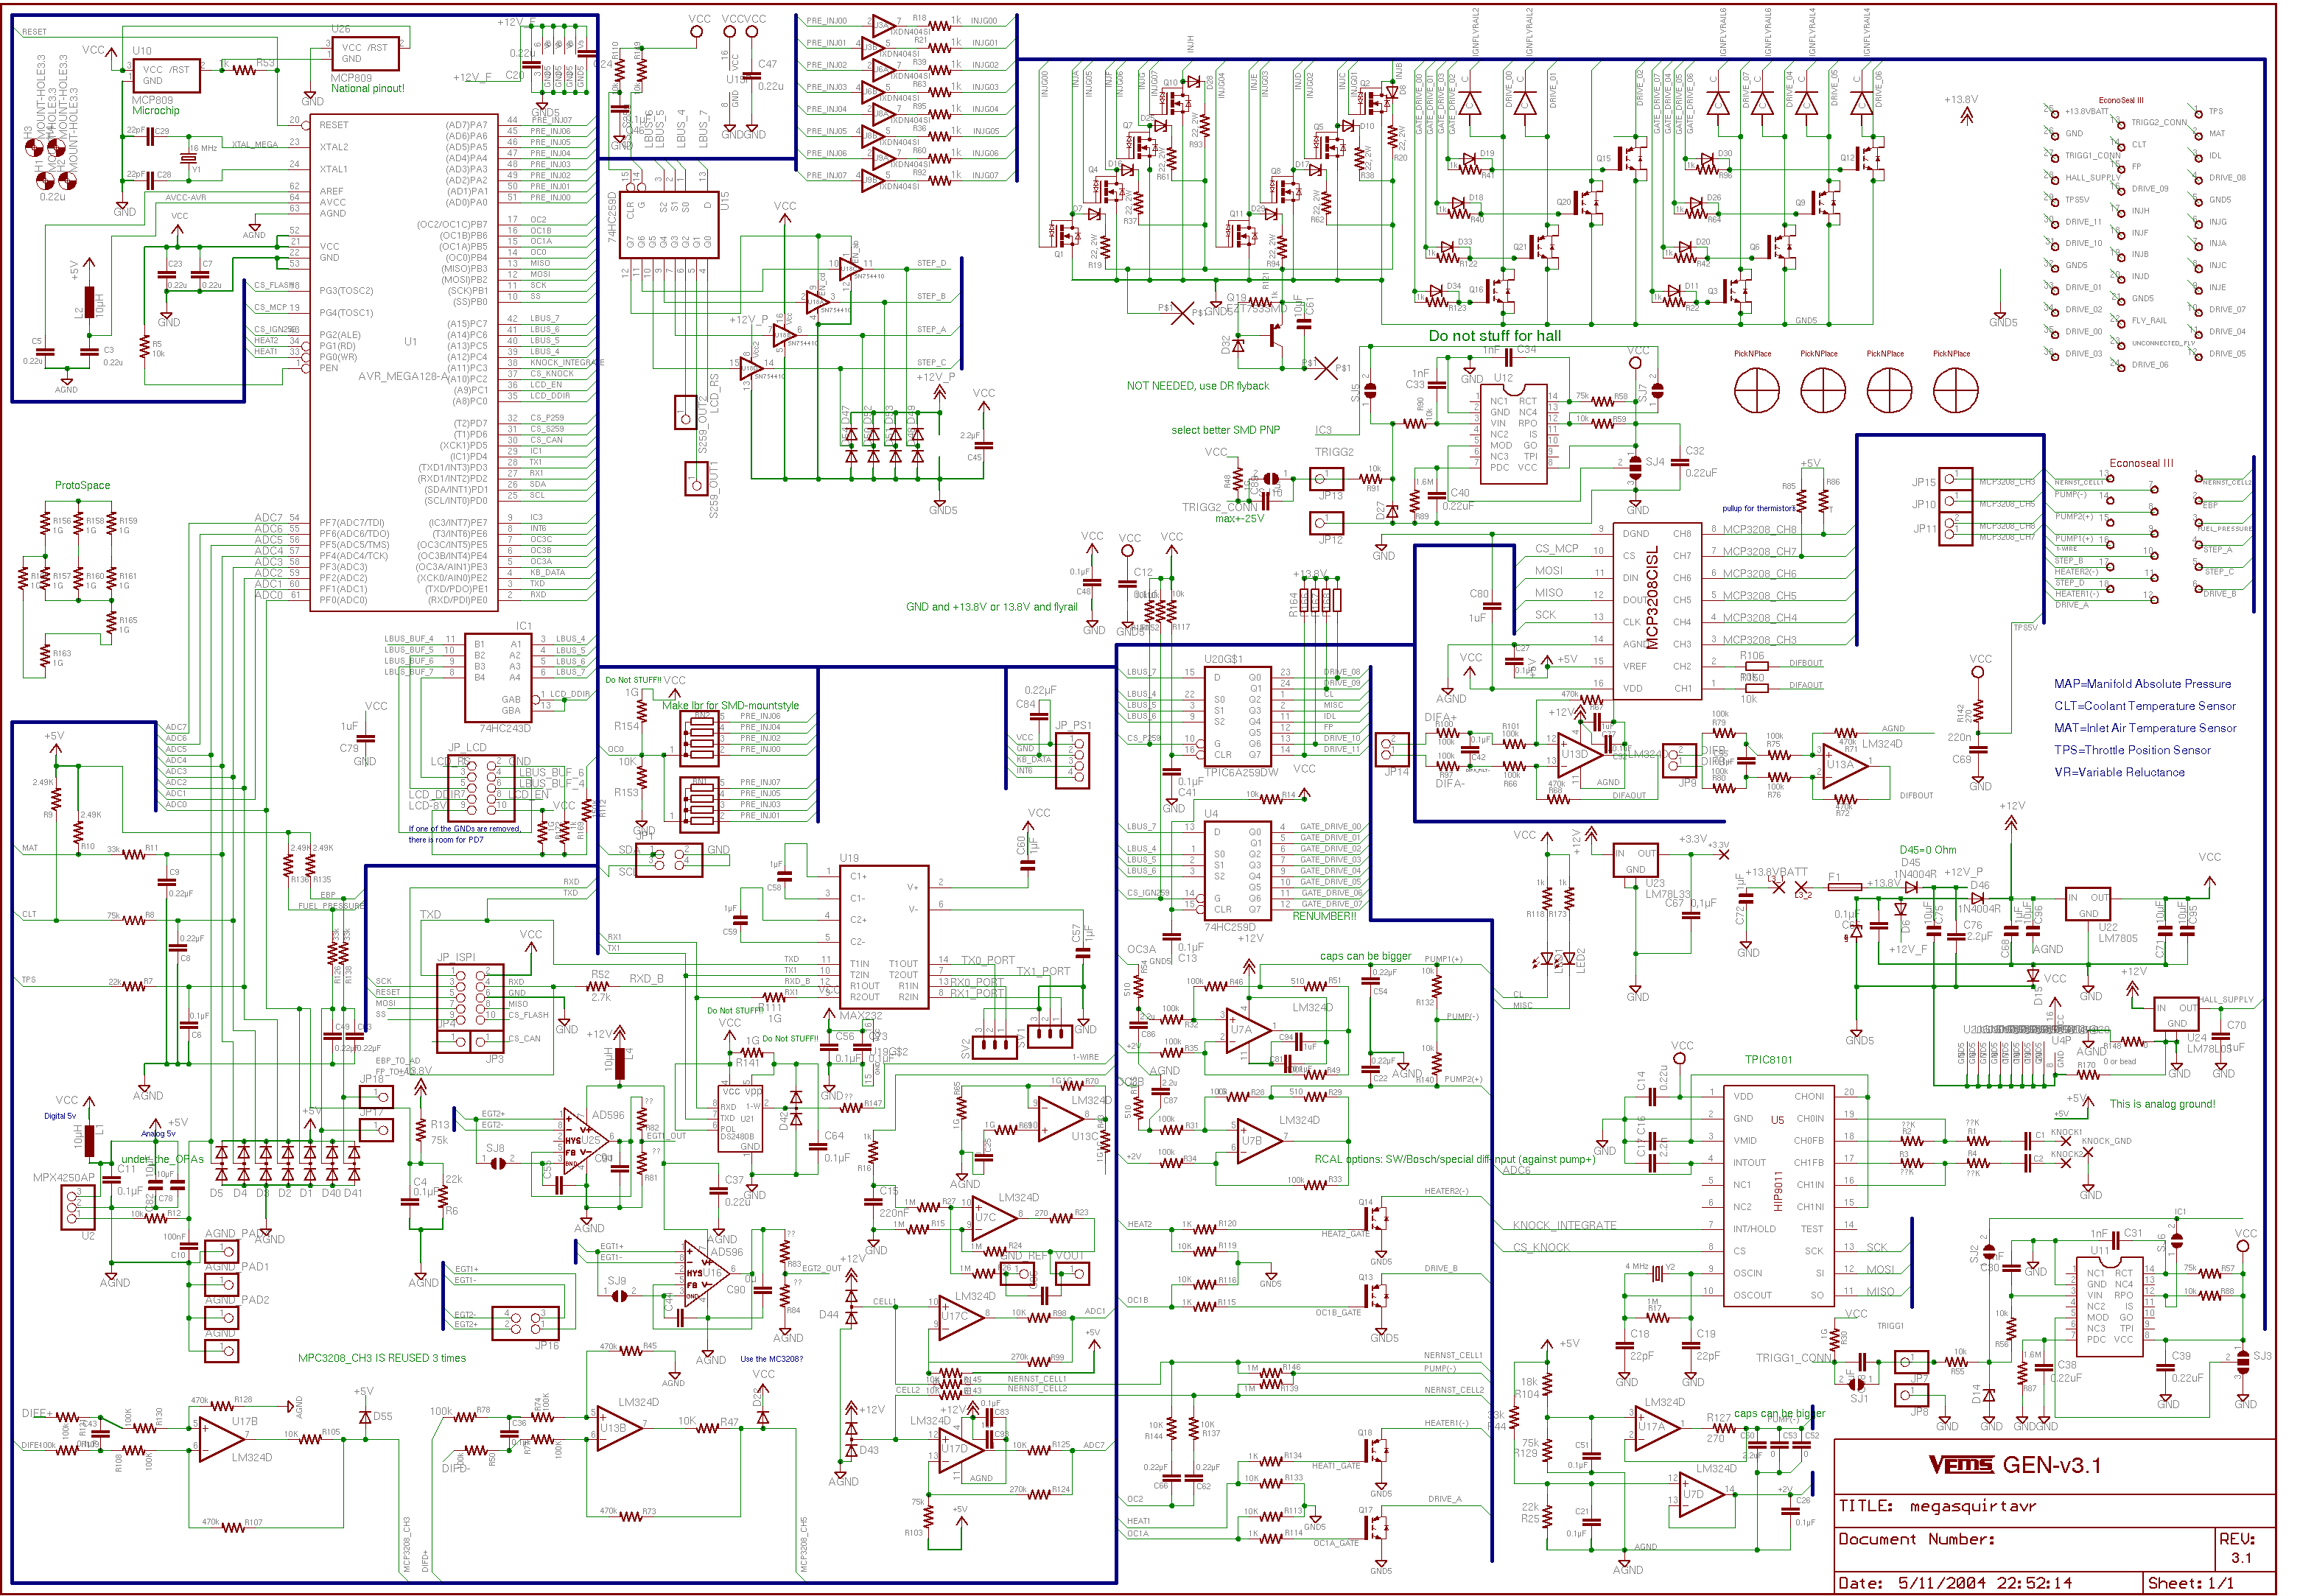 Gen Board/Ver Three/Schematic - VEMS wiki www.vems.hu